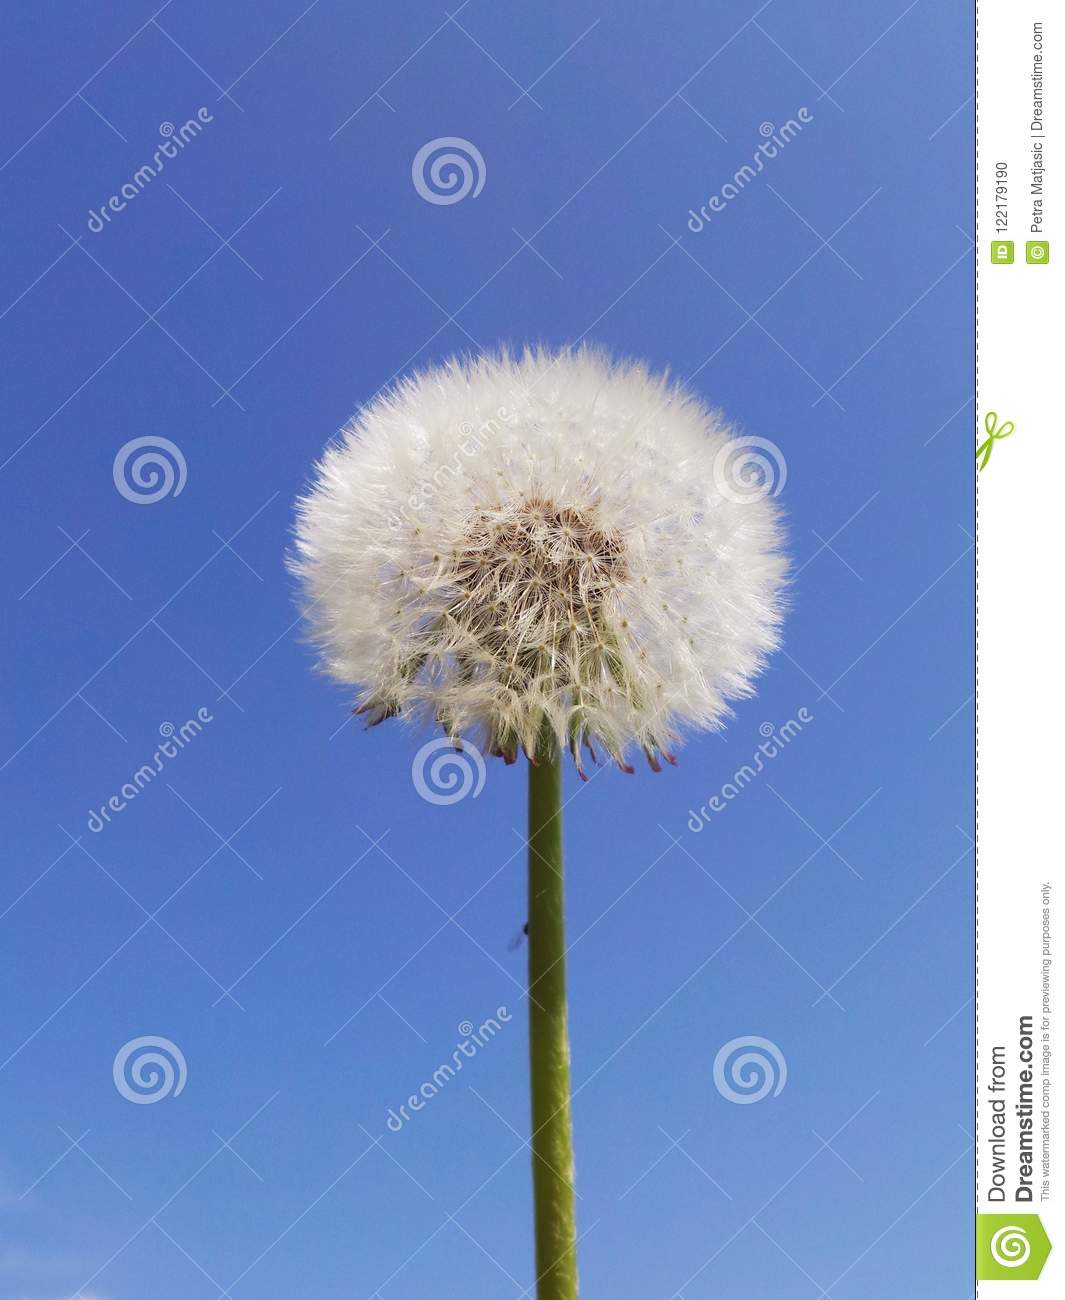 Dandelion Clock With Blue Sky In Background Stock Photo